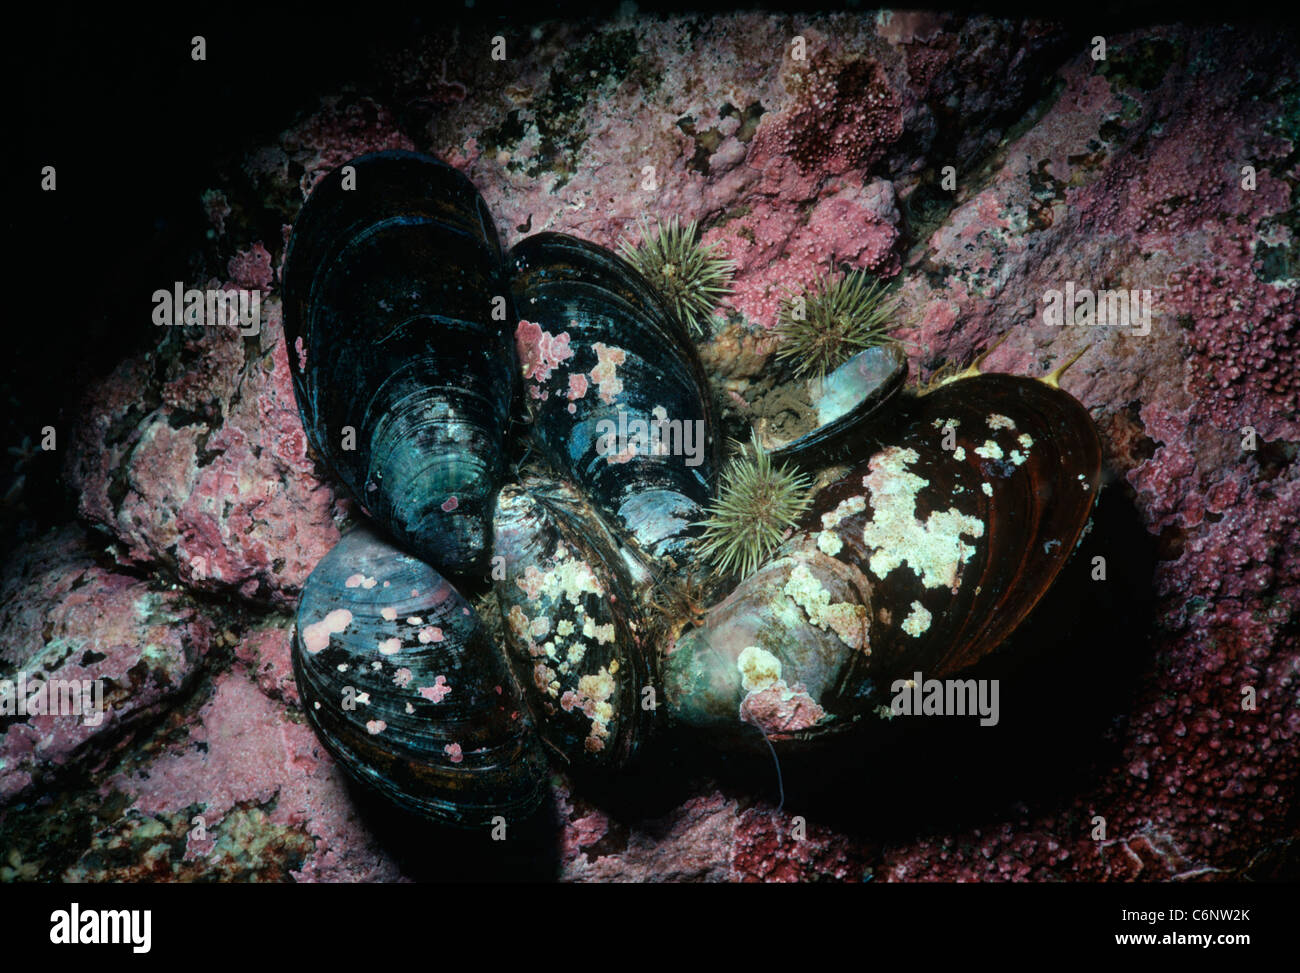 Ribbed mussels (Aulacomya ater) attached to substrate. New England (USA) - North Atlantic Ocean - Stock Image